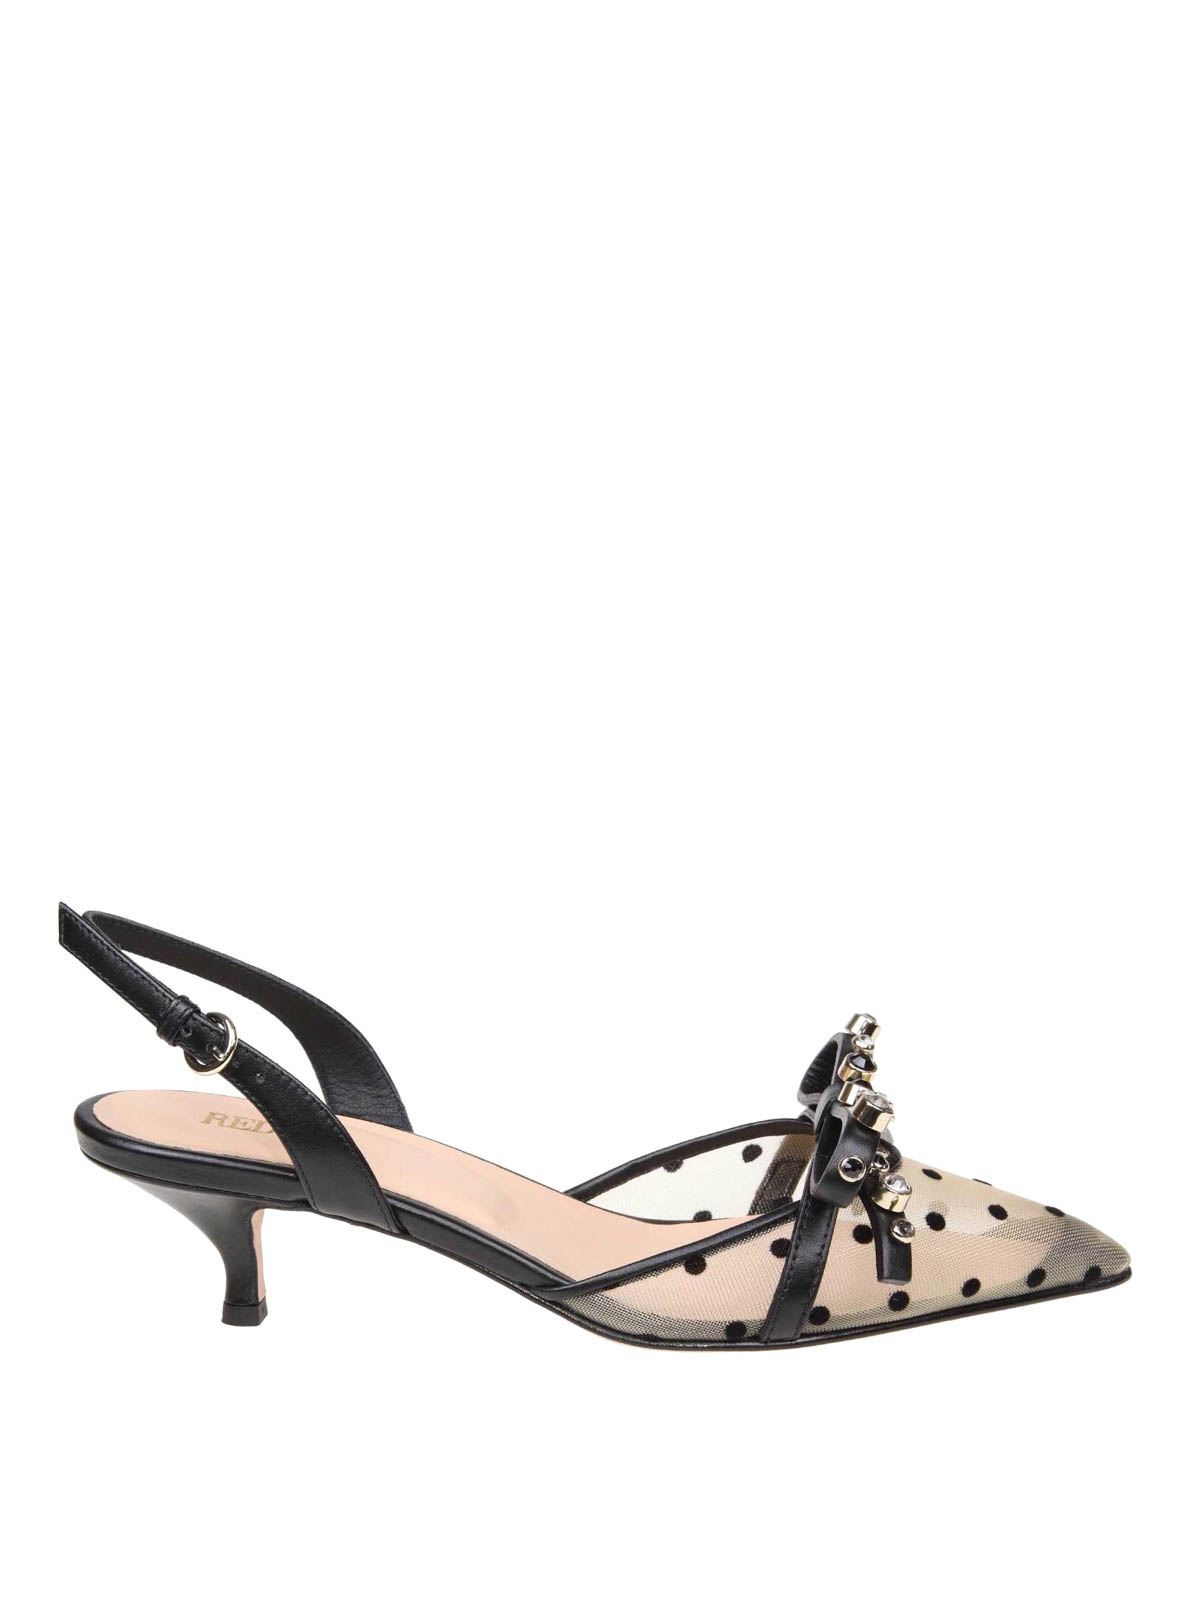 fb579f52db4 VALENTINO RED  court shoes - Nude and black polka dot leather slingbacks